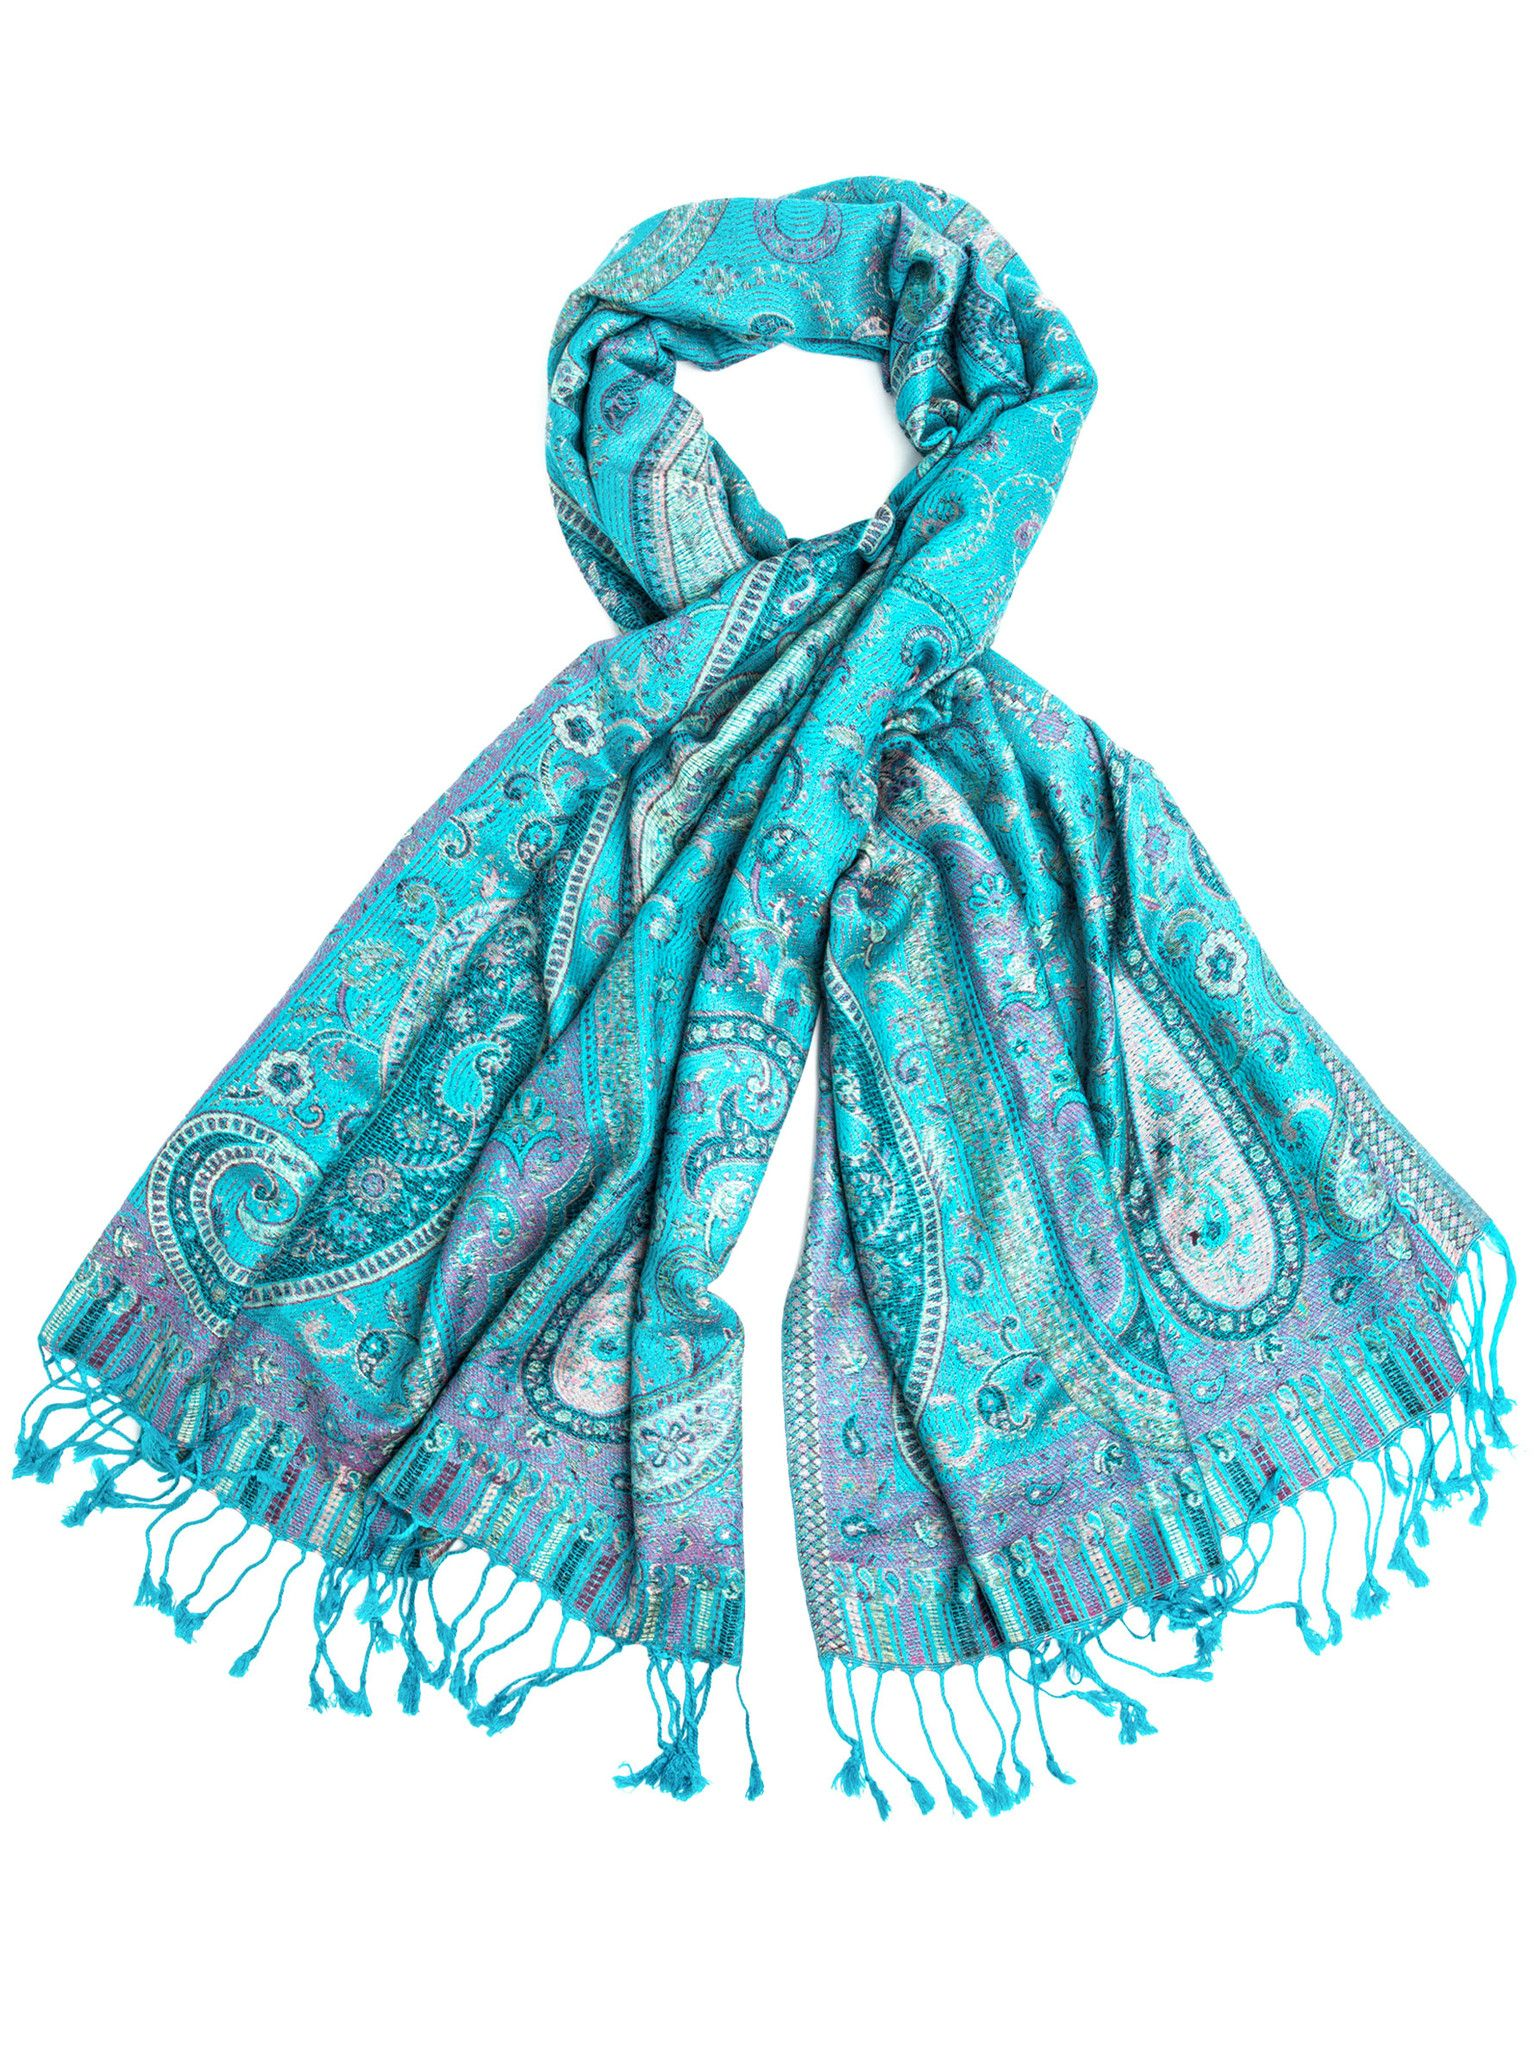 nuovo arrivo d9e66 ecc1d A full-sized Pashmina shawl version of our best seller! One ...